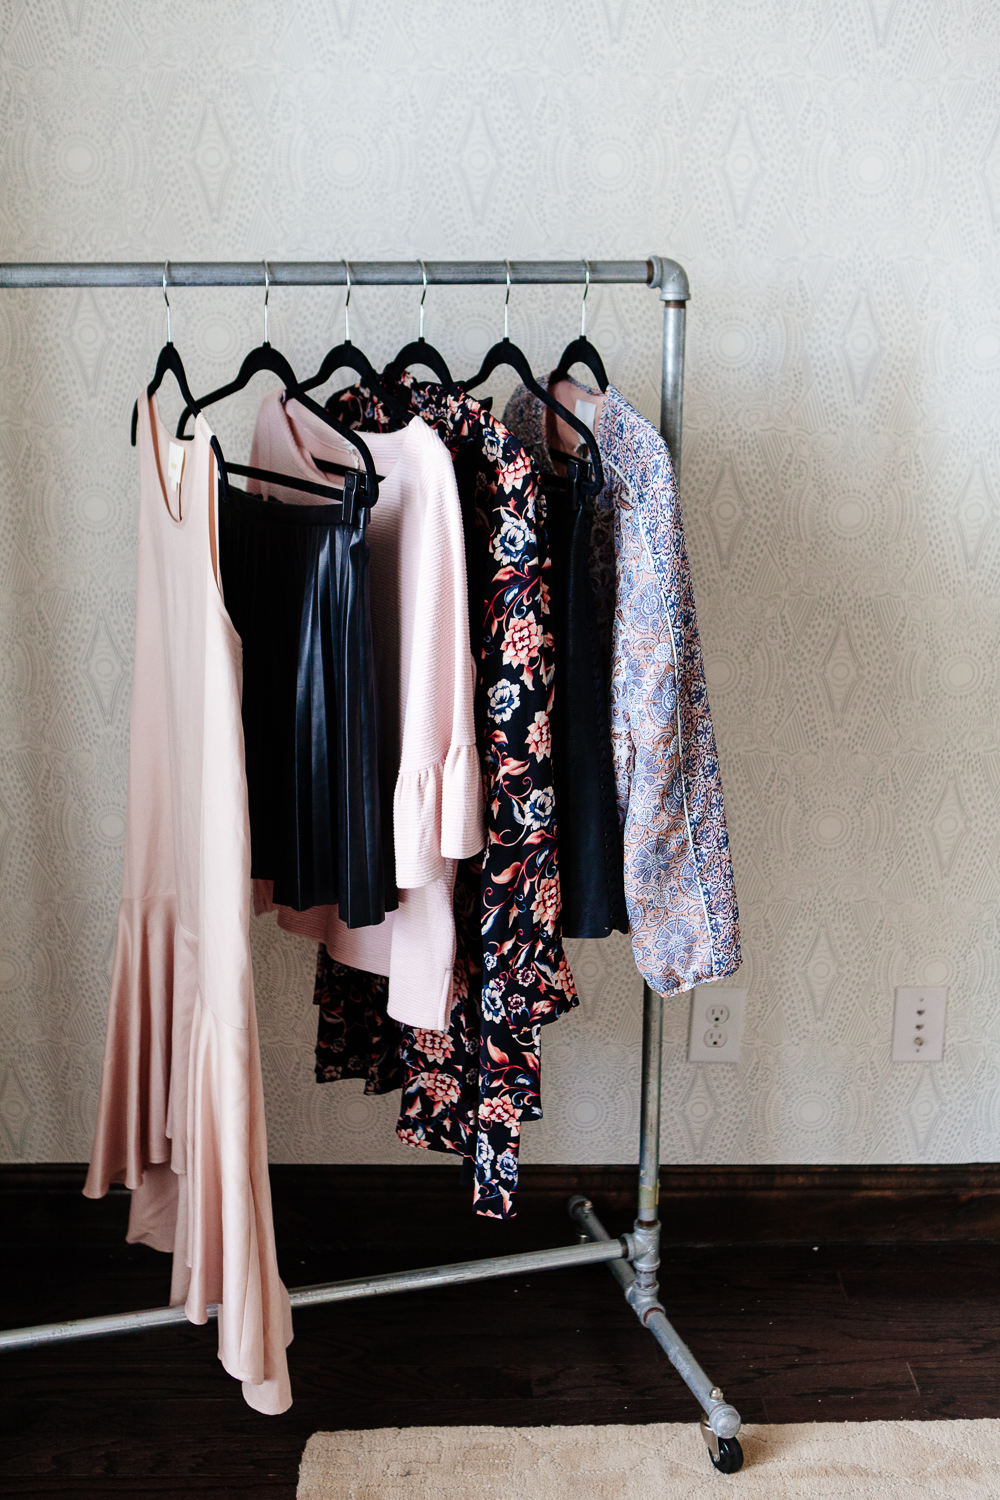 Clothing rack on wallpapered wall.